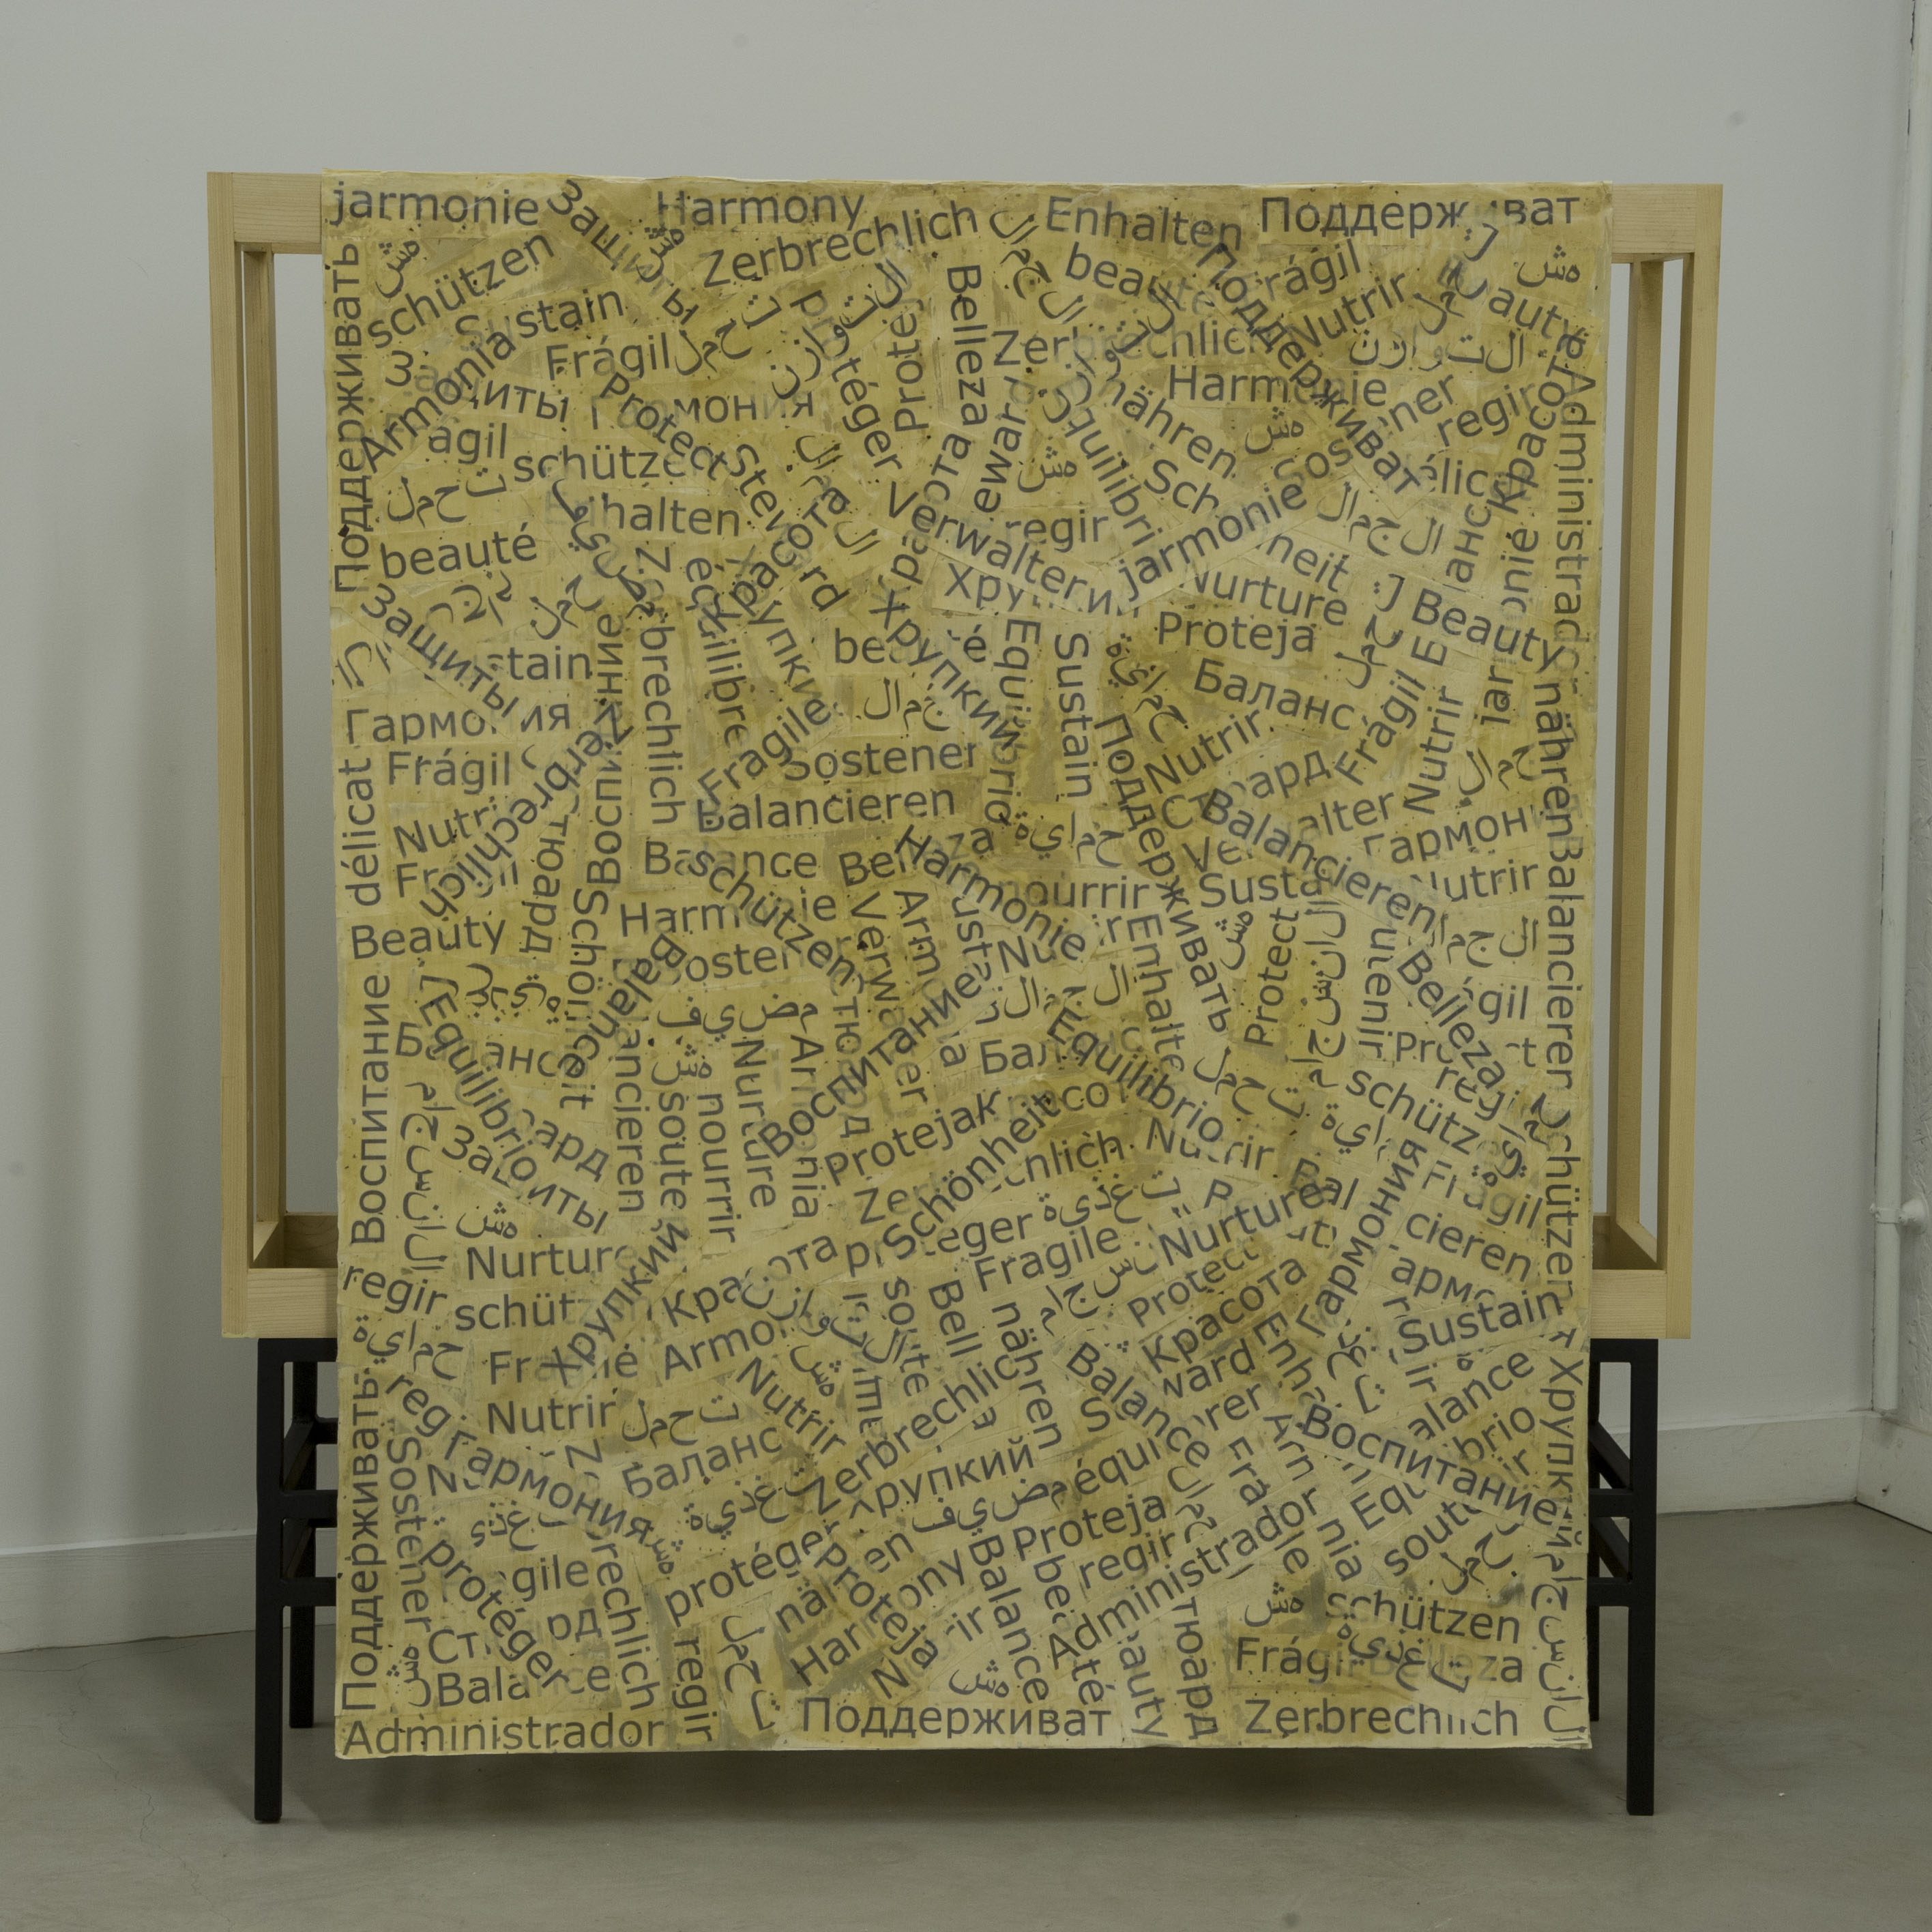 Comfort by Pat Musick, a large sheet of paper covered in words, displayed on a loom-like structure